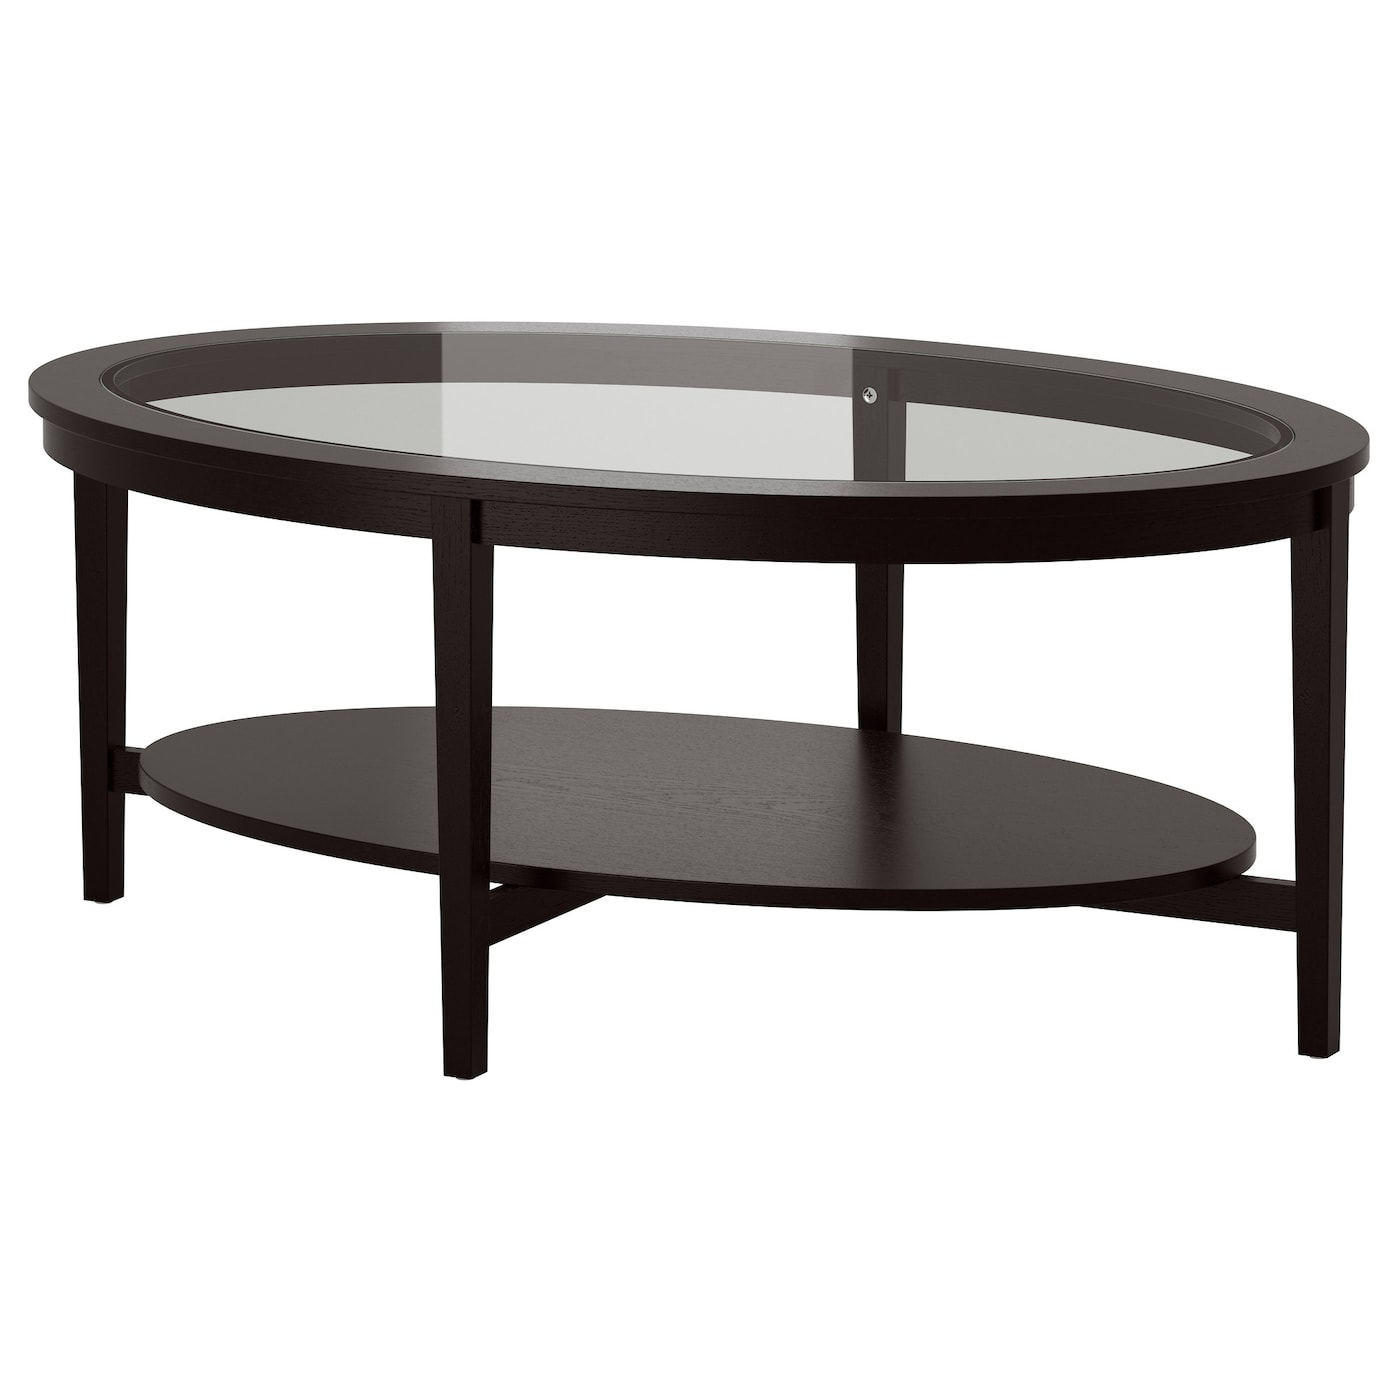 malmsta table basse brun noir 130 x 80 cm ikea. Black Bedroom Furniture Sets. Home Design Ideas